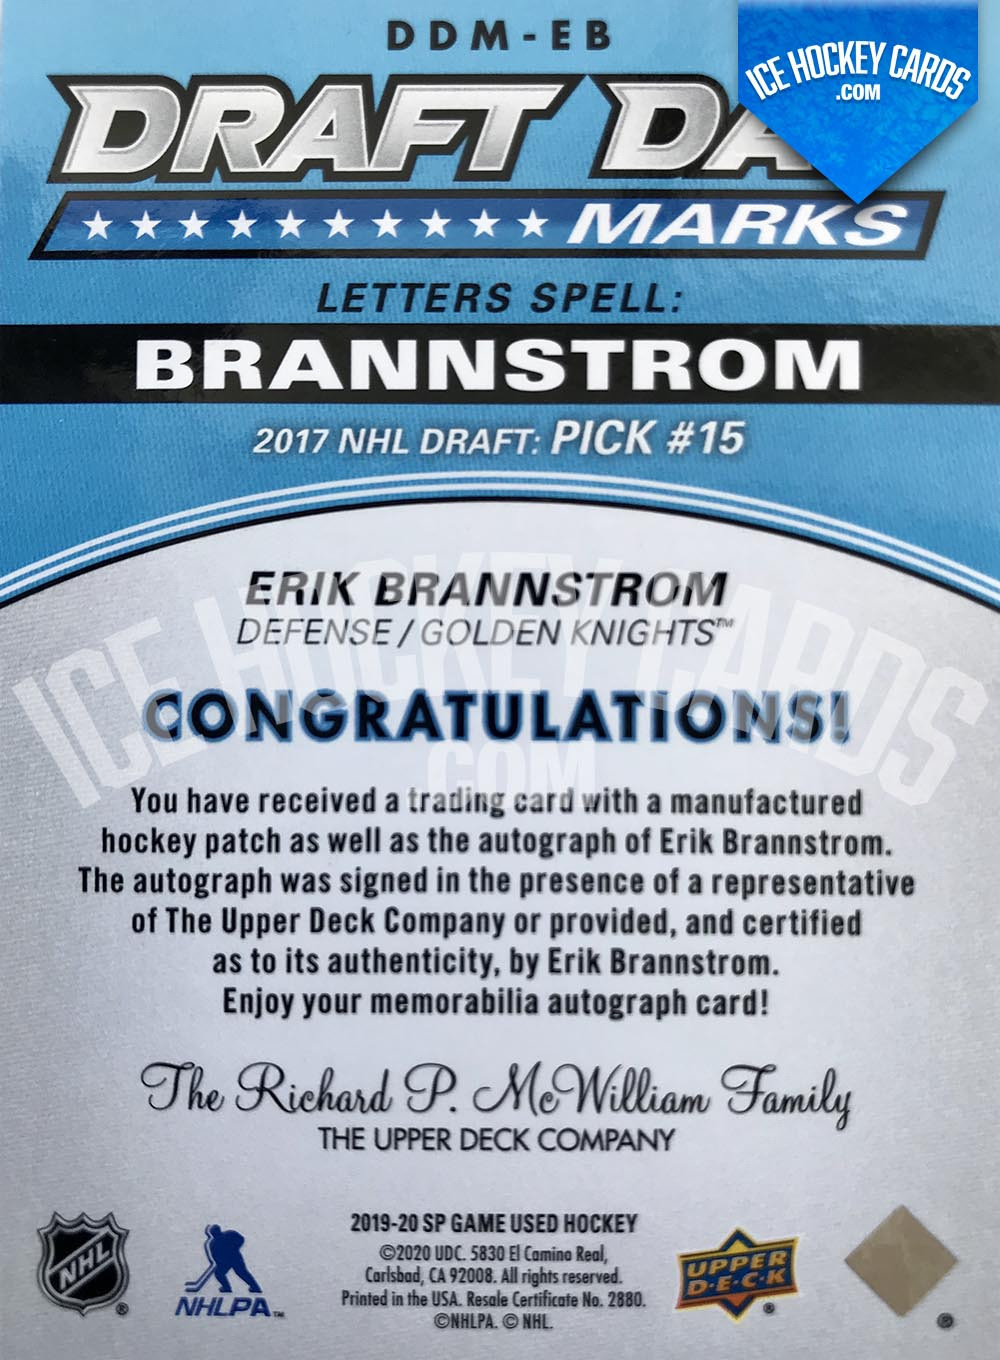 Upper Deck - SP Game Used 2019-20 - Erik Brannstrom Draft Day Marks - 2017 NHL Draft Pick #15 Rookie Card # to 35 RARE back